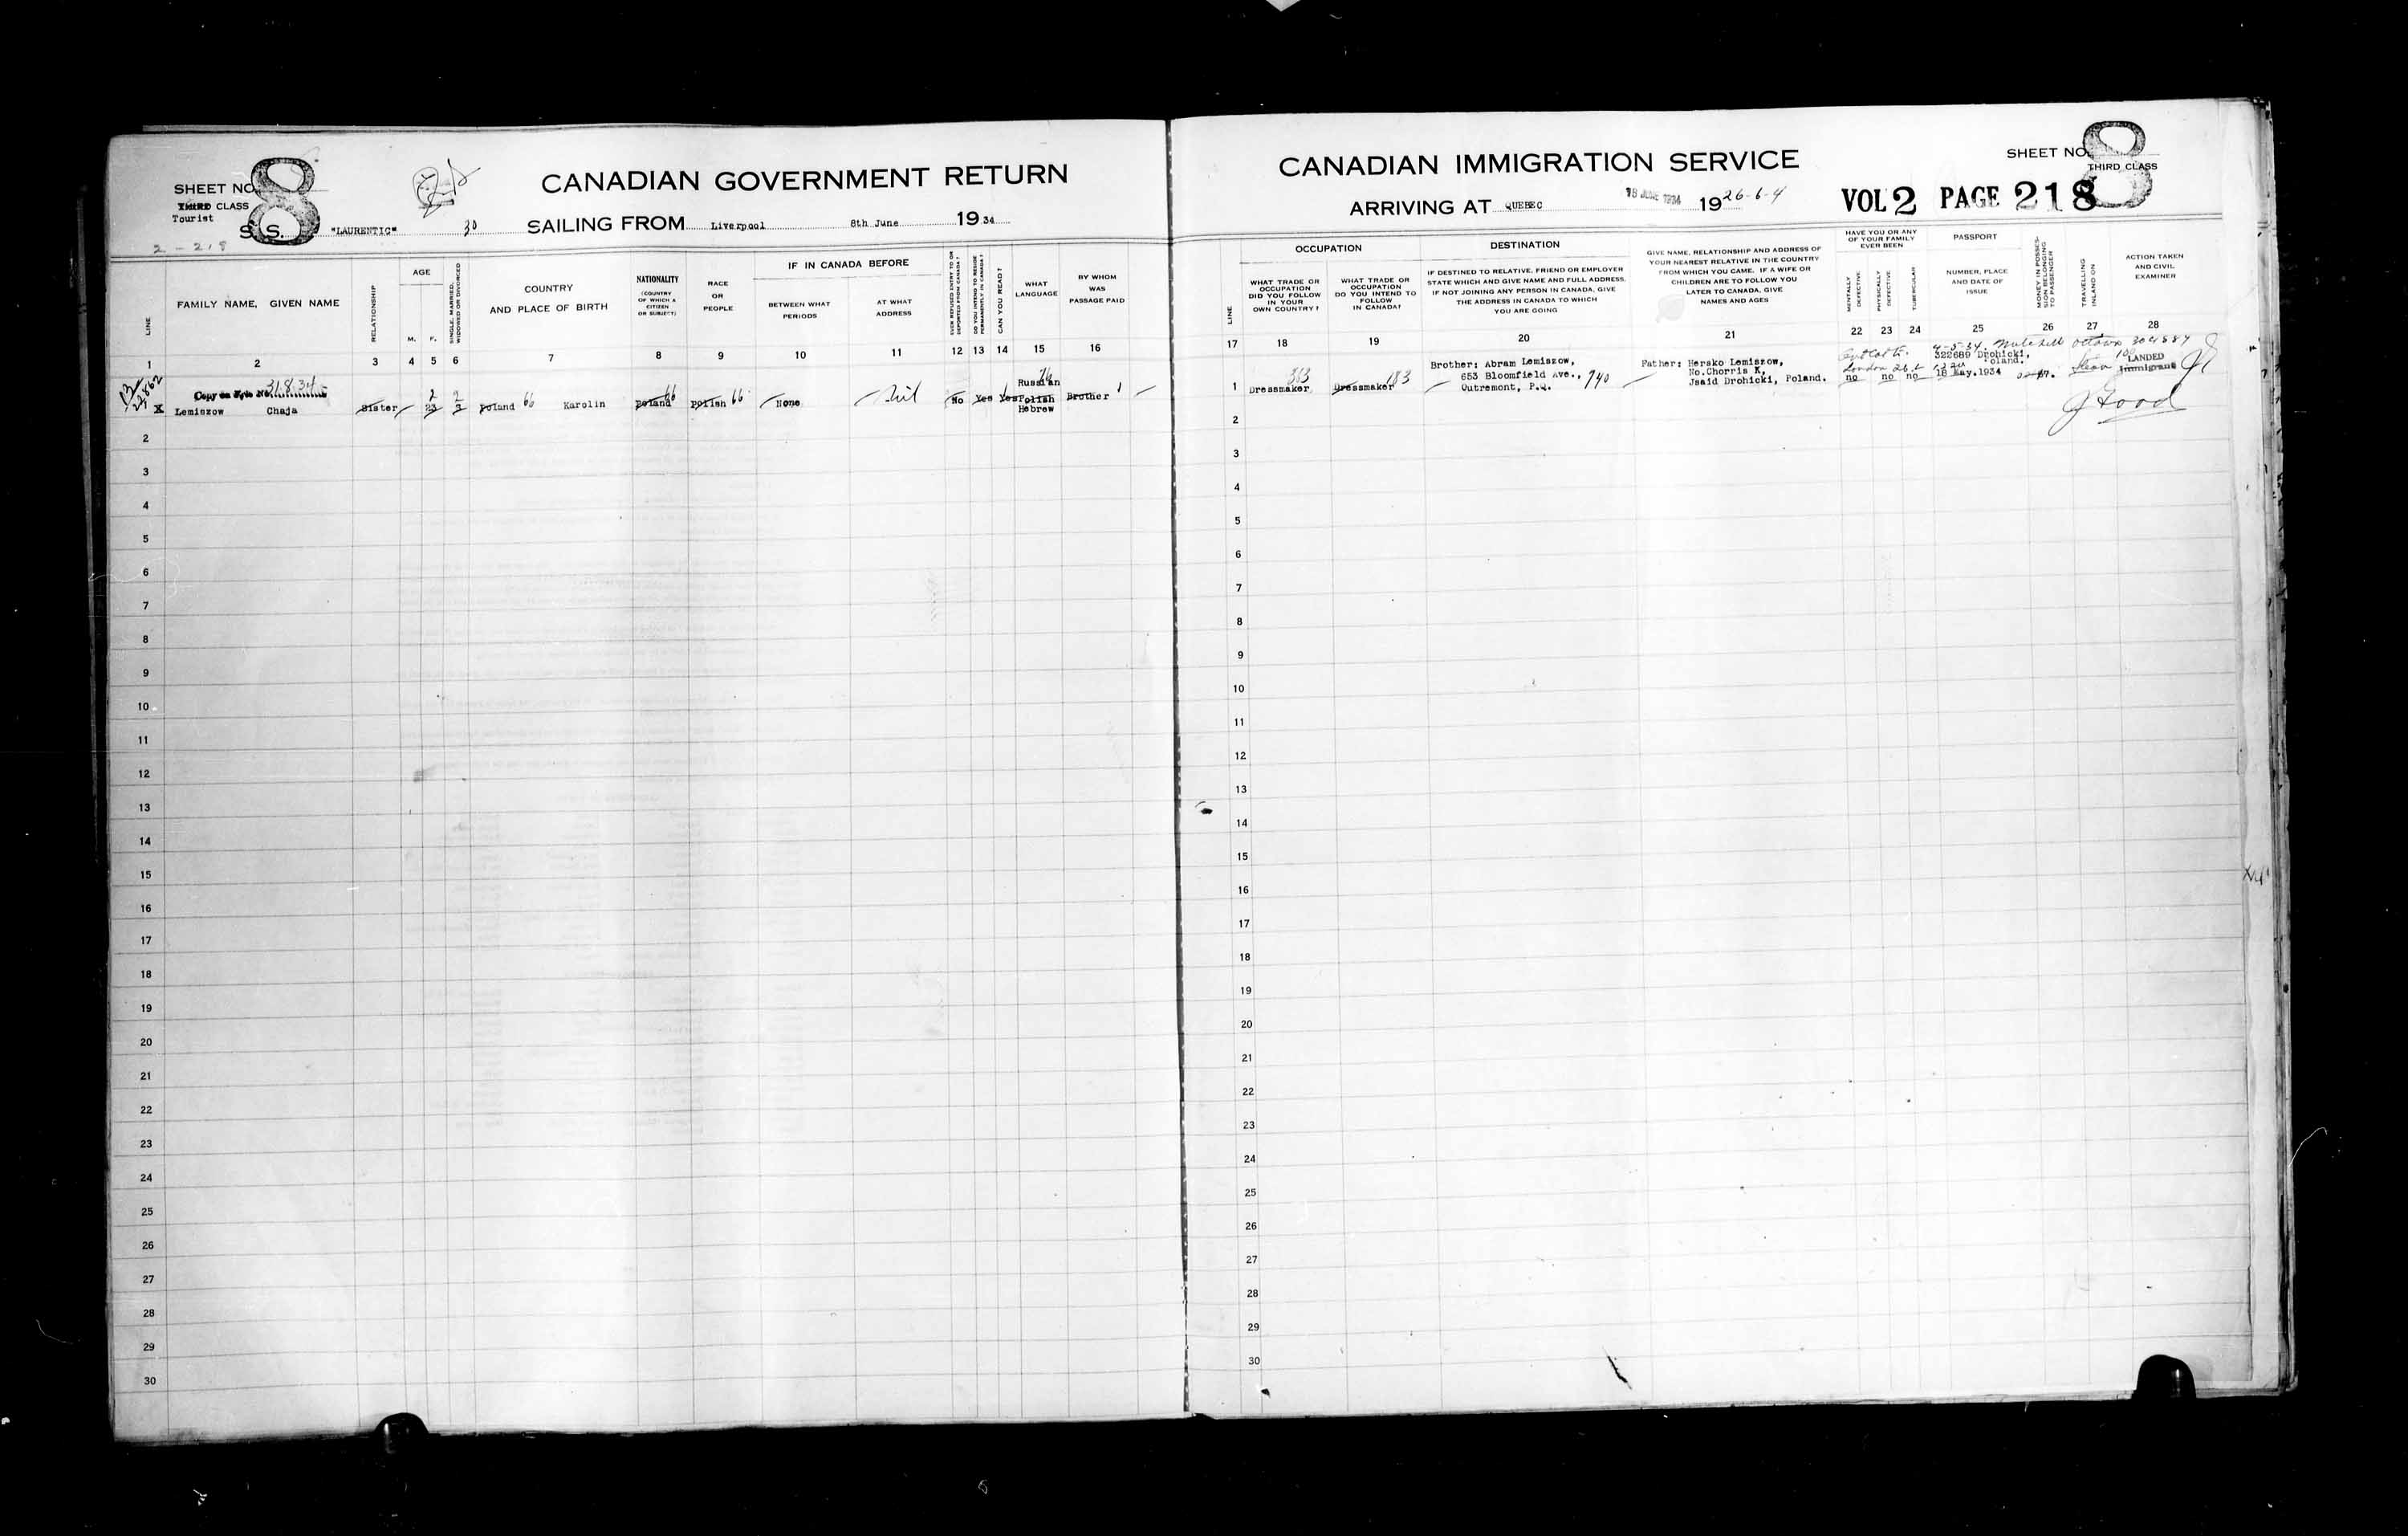 Title: Passenger Lists: Quebec City (1925-1935) - Mikan Number: 134839 - Microform: t-14787